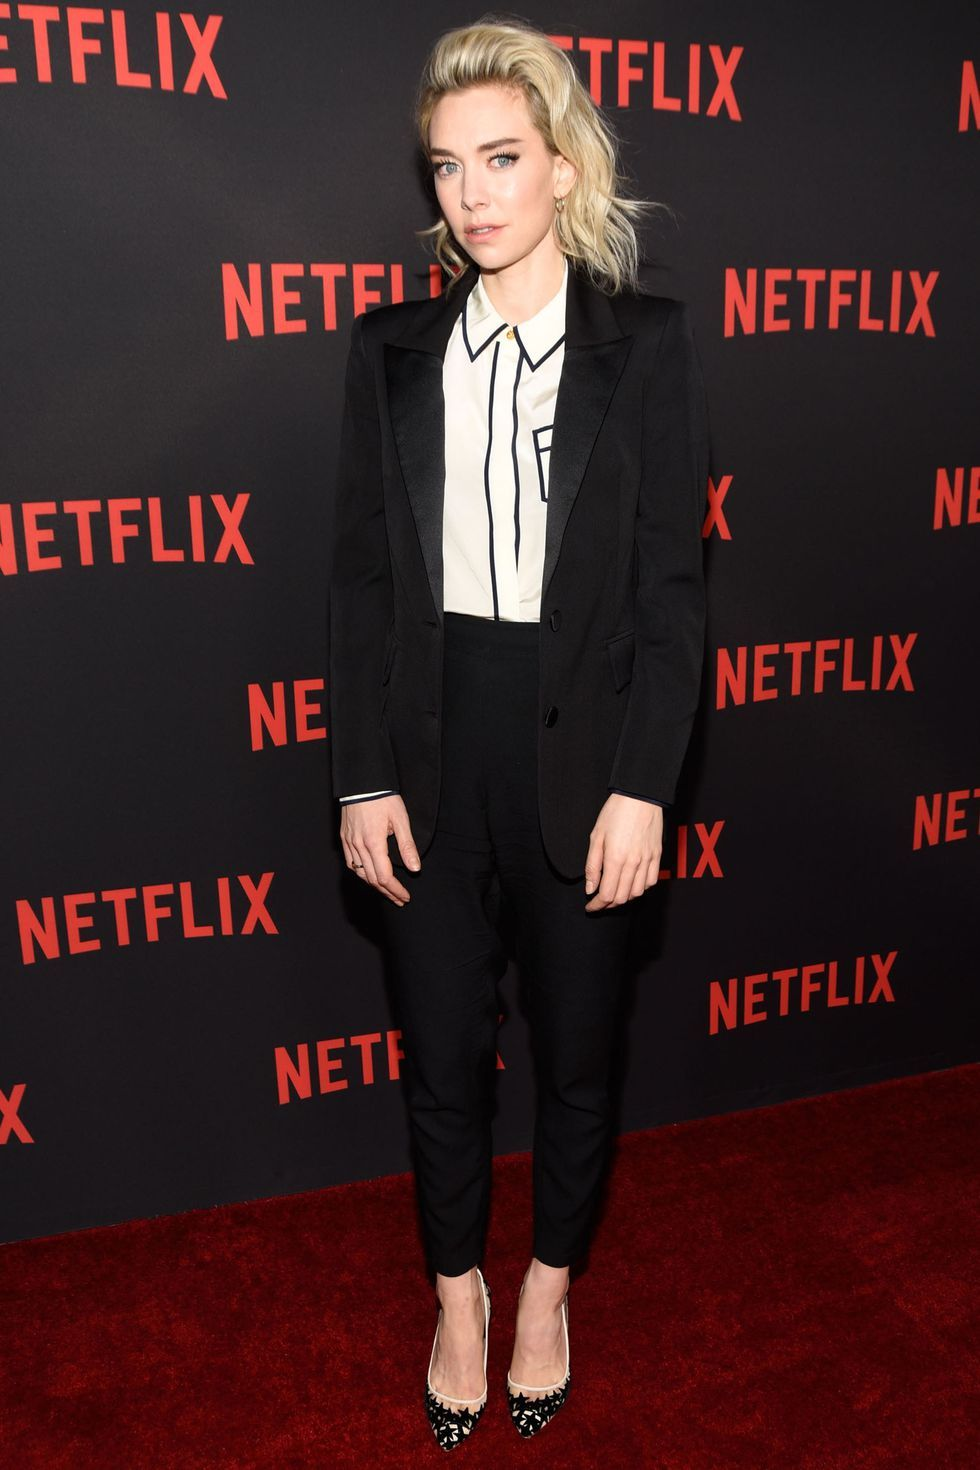 Best Dressed Women Of The Week.  Vanessa Kirby - power dressing in this incredible Racil suit for a Netflix event celebrating The Crown in LA.